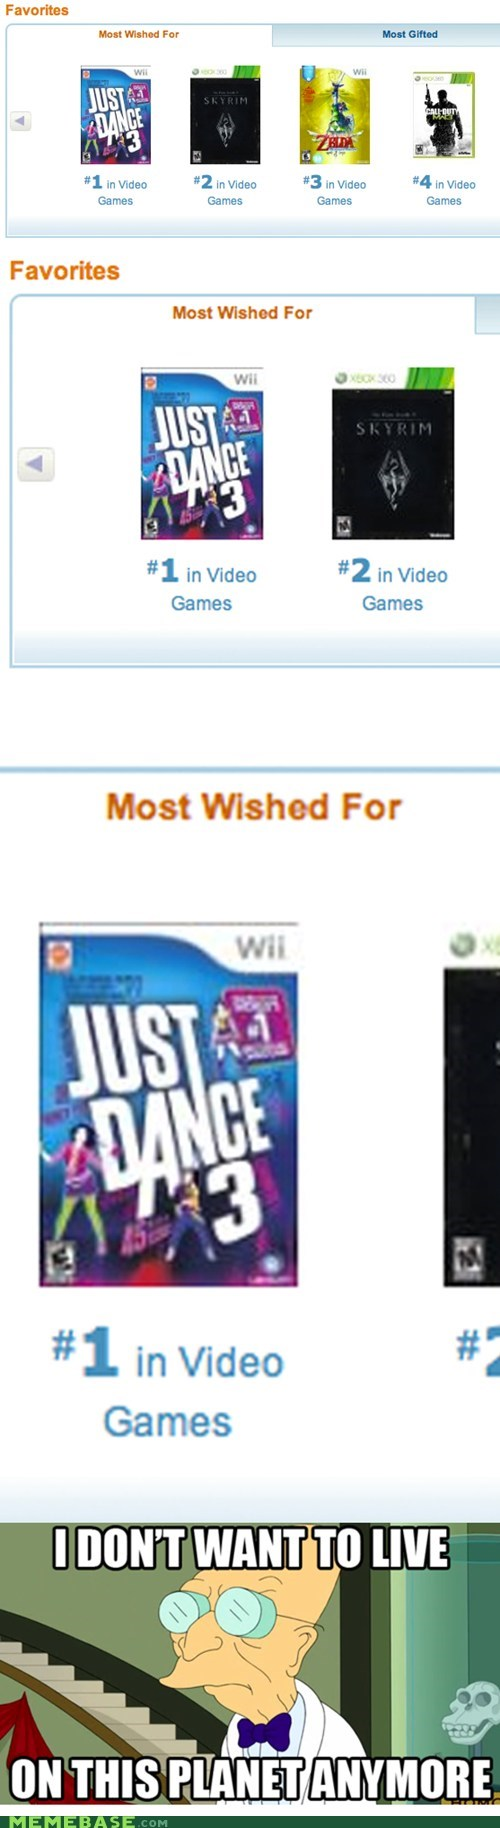 dancing,fus ro dah,games,i dont want to live on this planet anymore,seller,video games